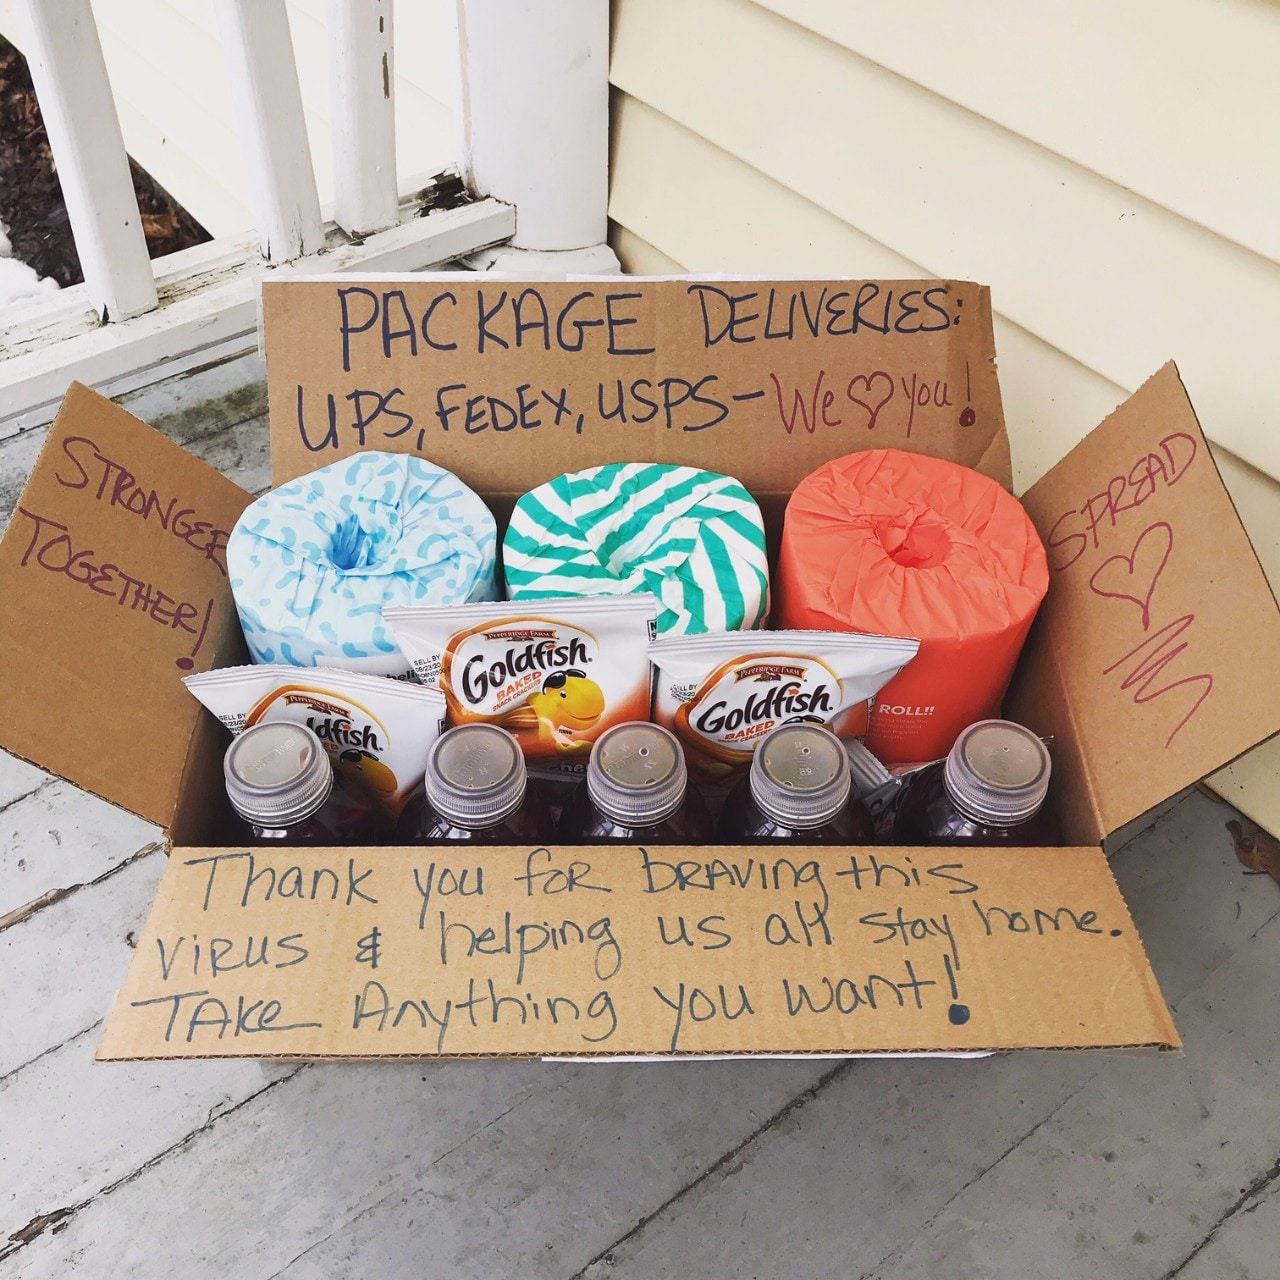 Image of a box of water, snacks and toilet paper with thank you note that says 'thank you for braving this virus and helping us all stay home'